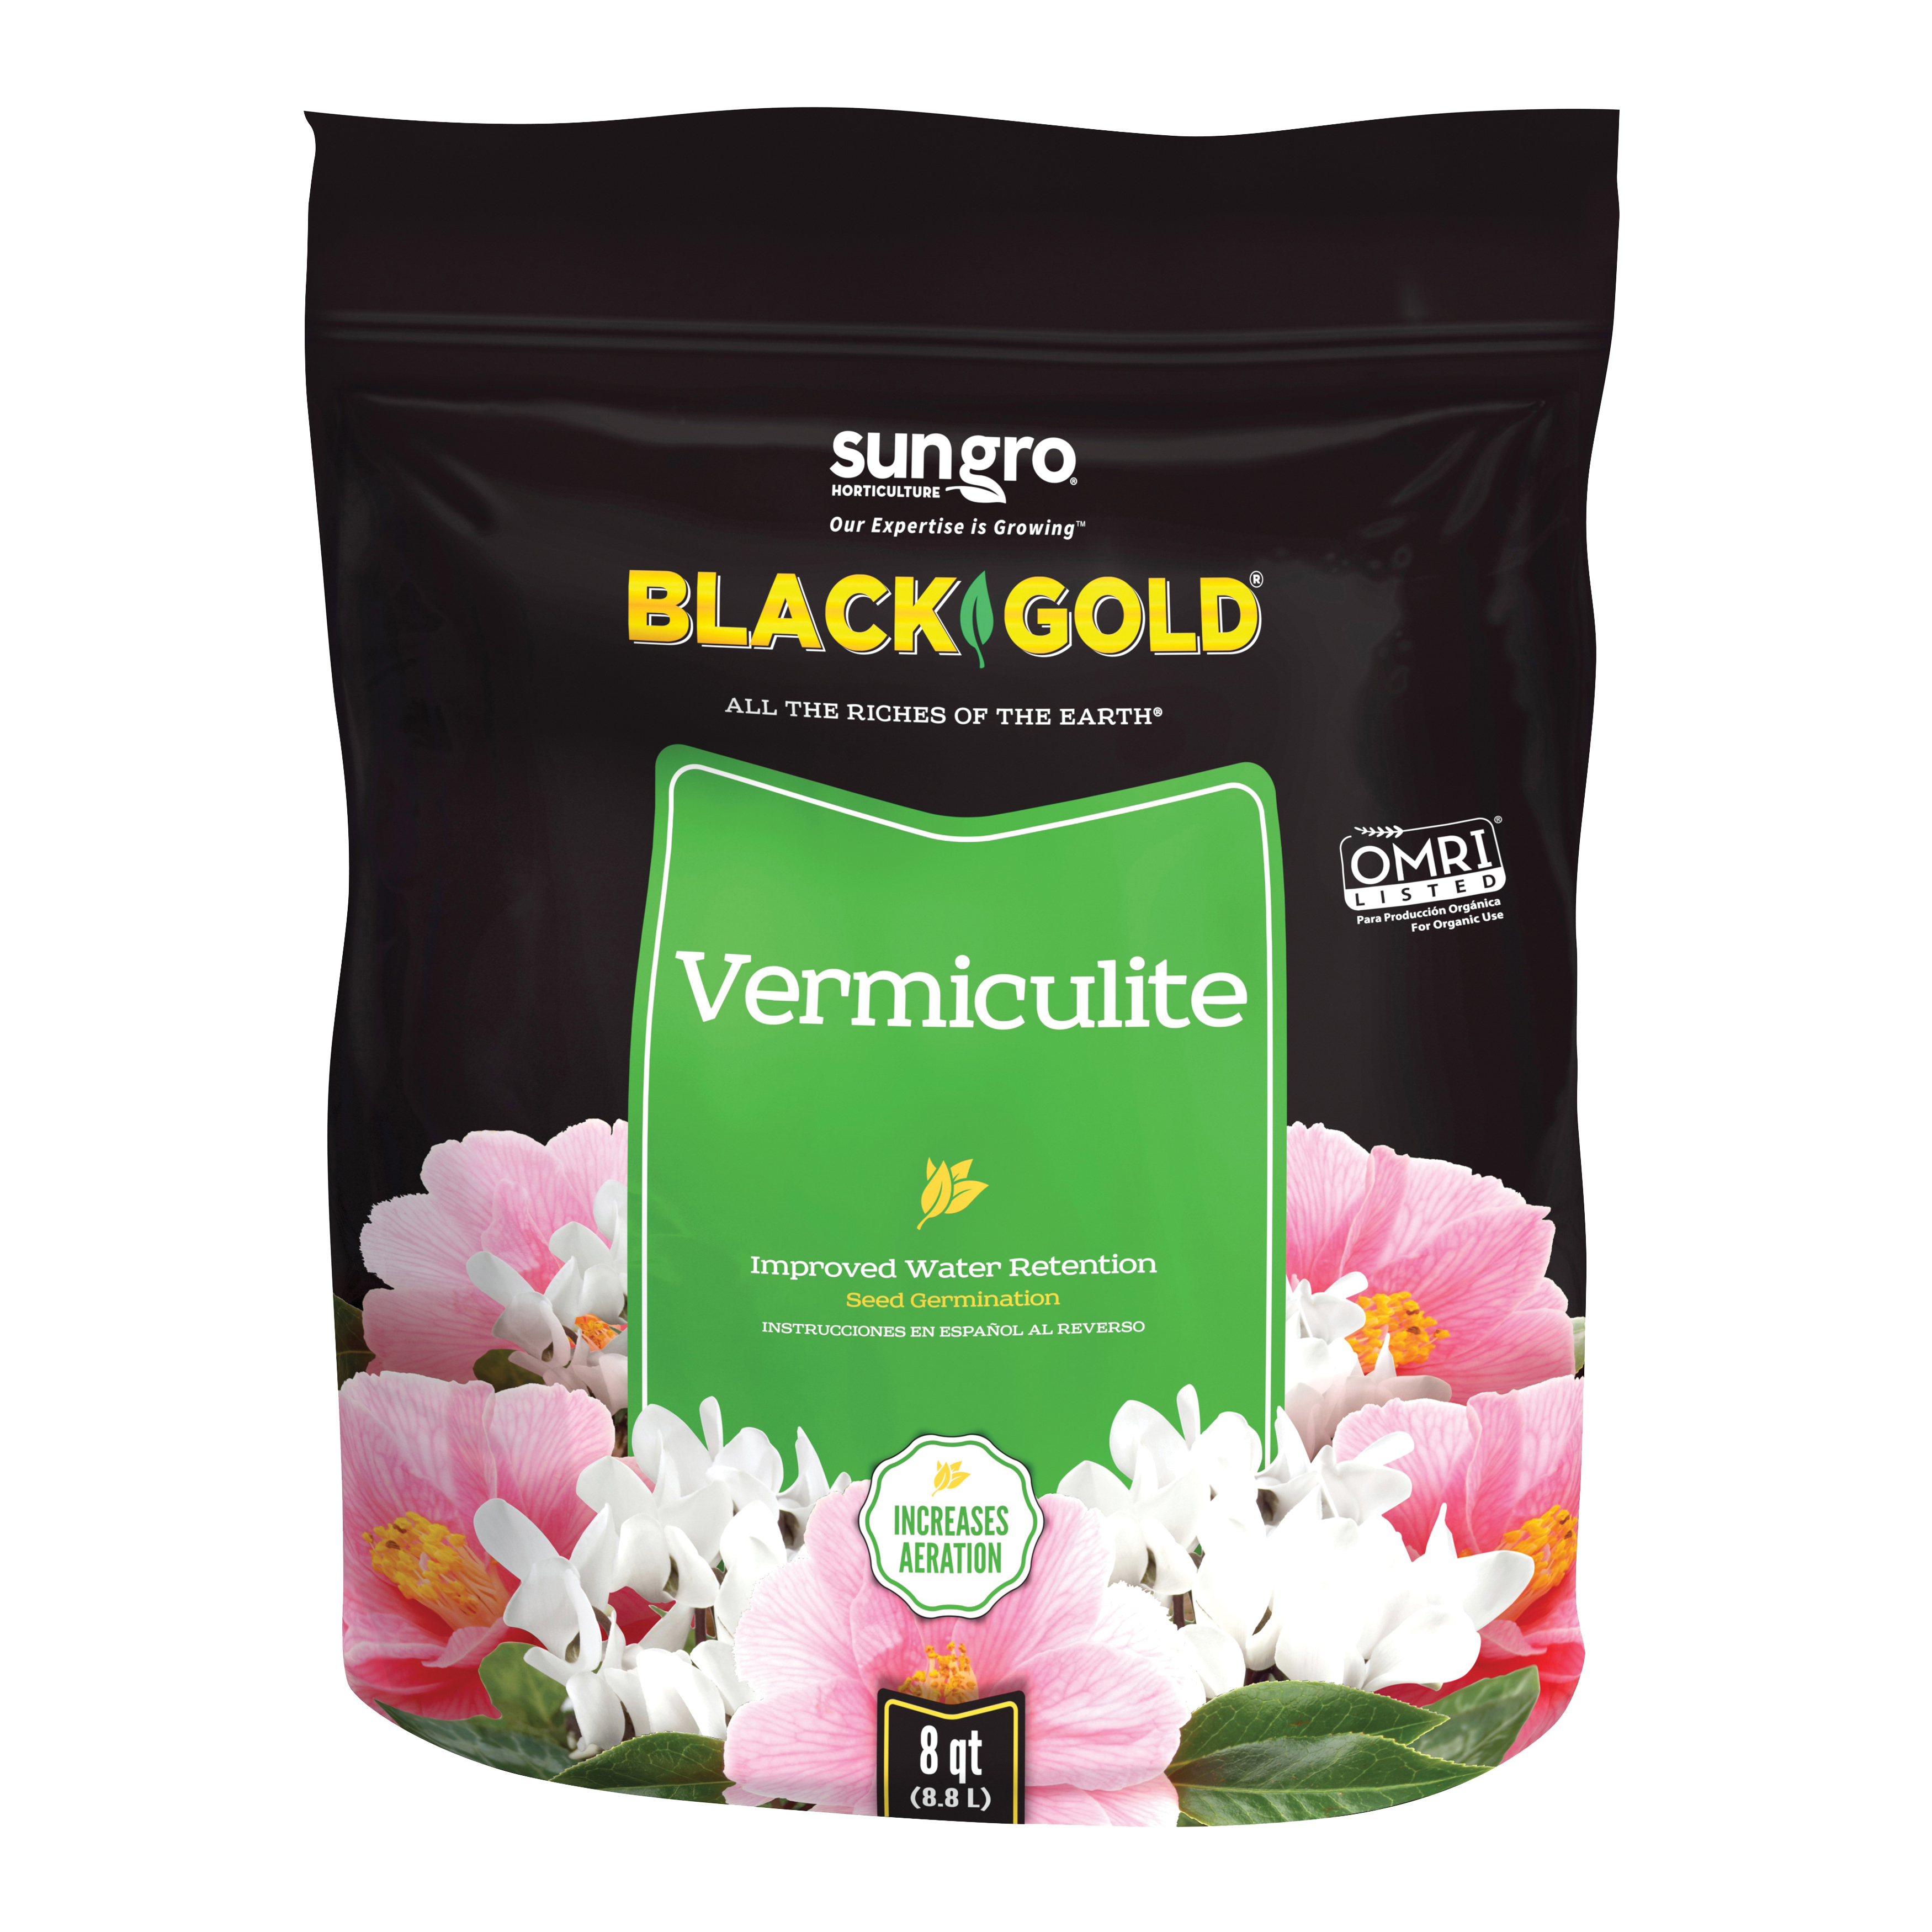 Picture of sun gro Sunshine 1490202.Q08P Vermiculite, 8 qt Package, Bag